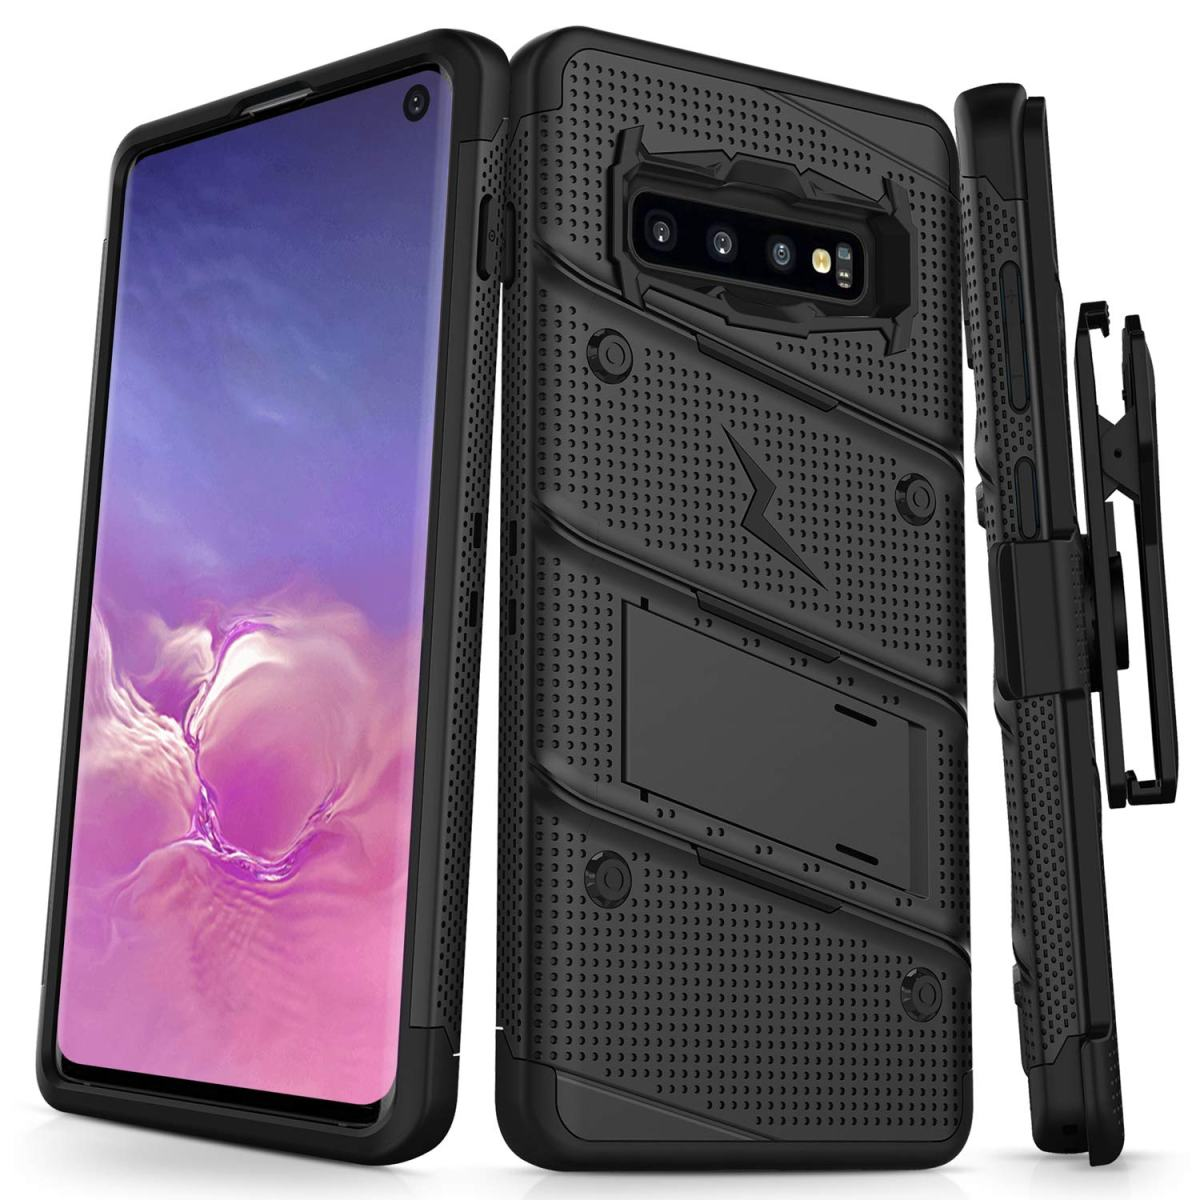 These are the best heavy-duty cases for the Samsung Galaxy S10